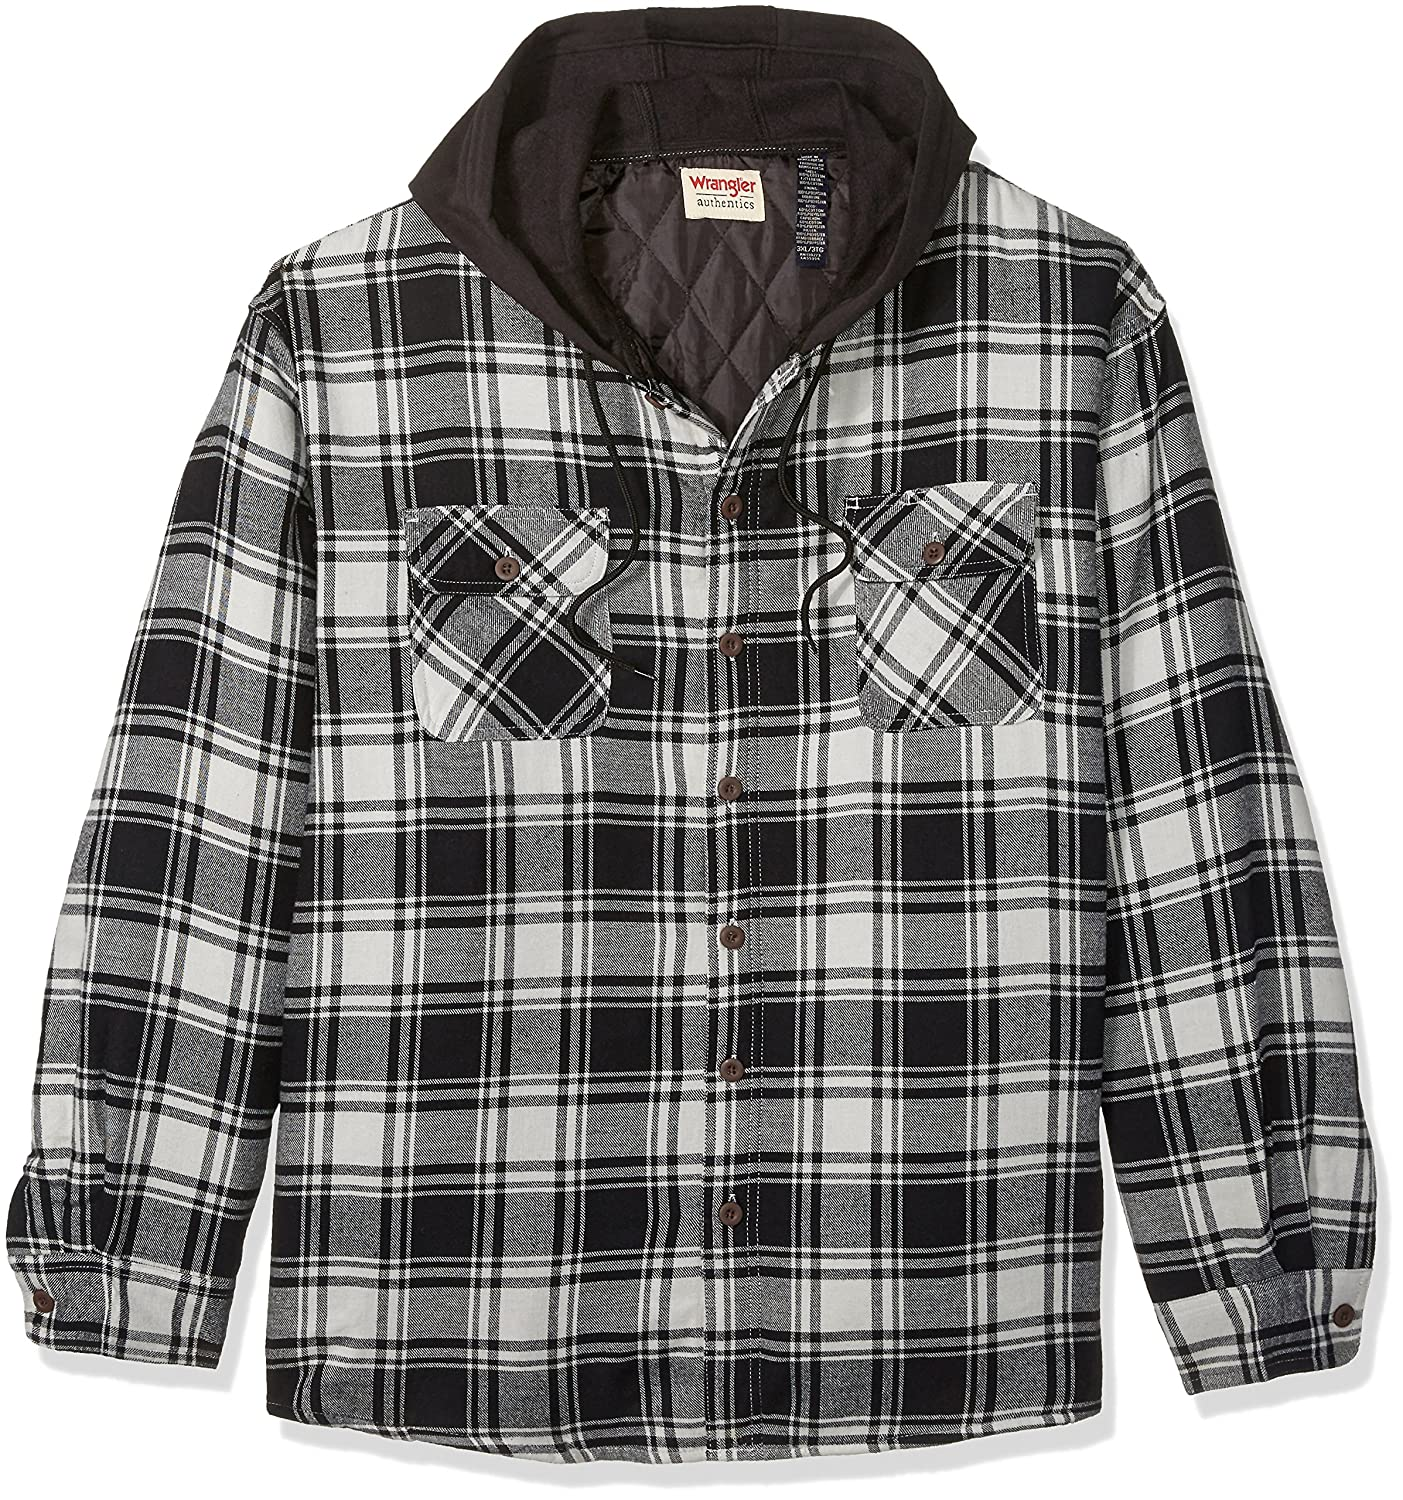 Amazon.com: Wrangler Authentics Men's Big and Tall Long Sleeve ... : quilted flannel jacket with hood - Adamdwight.com